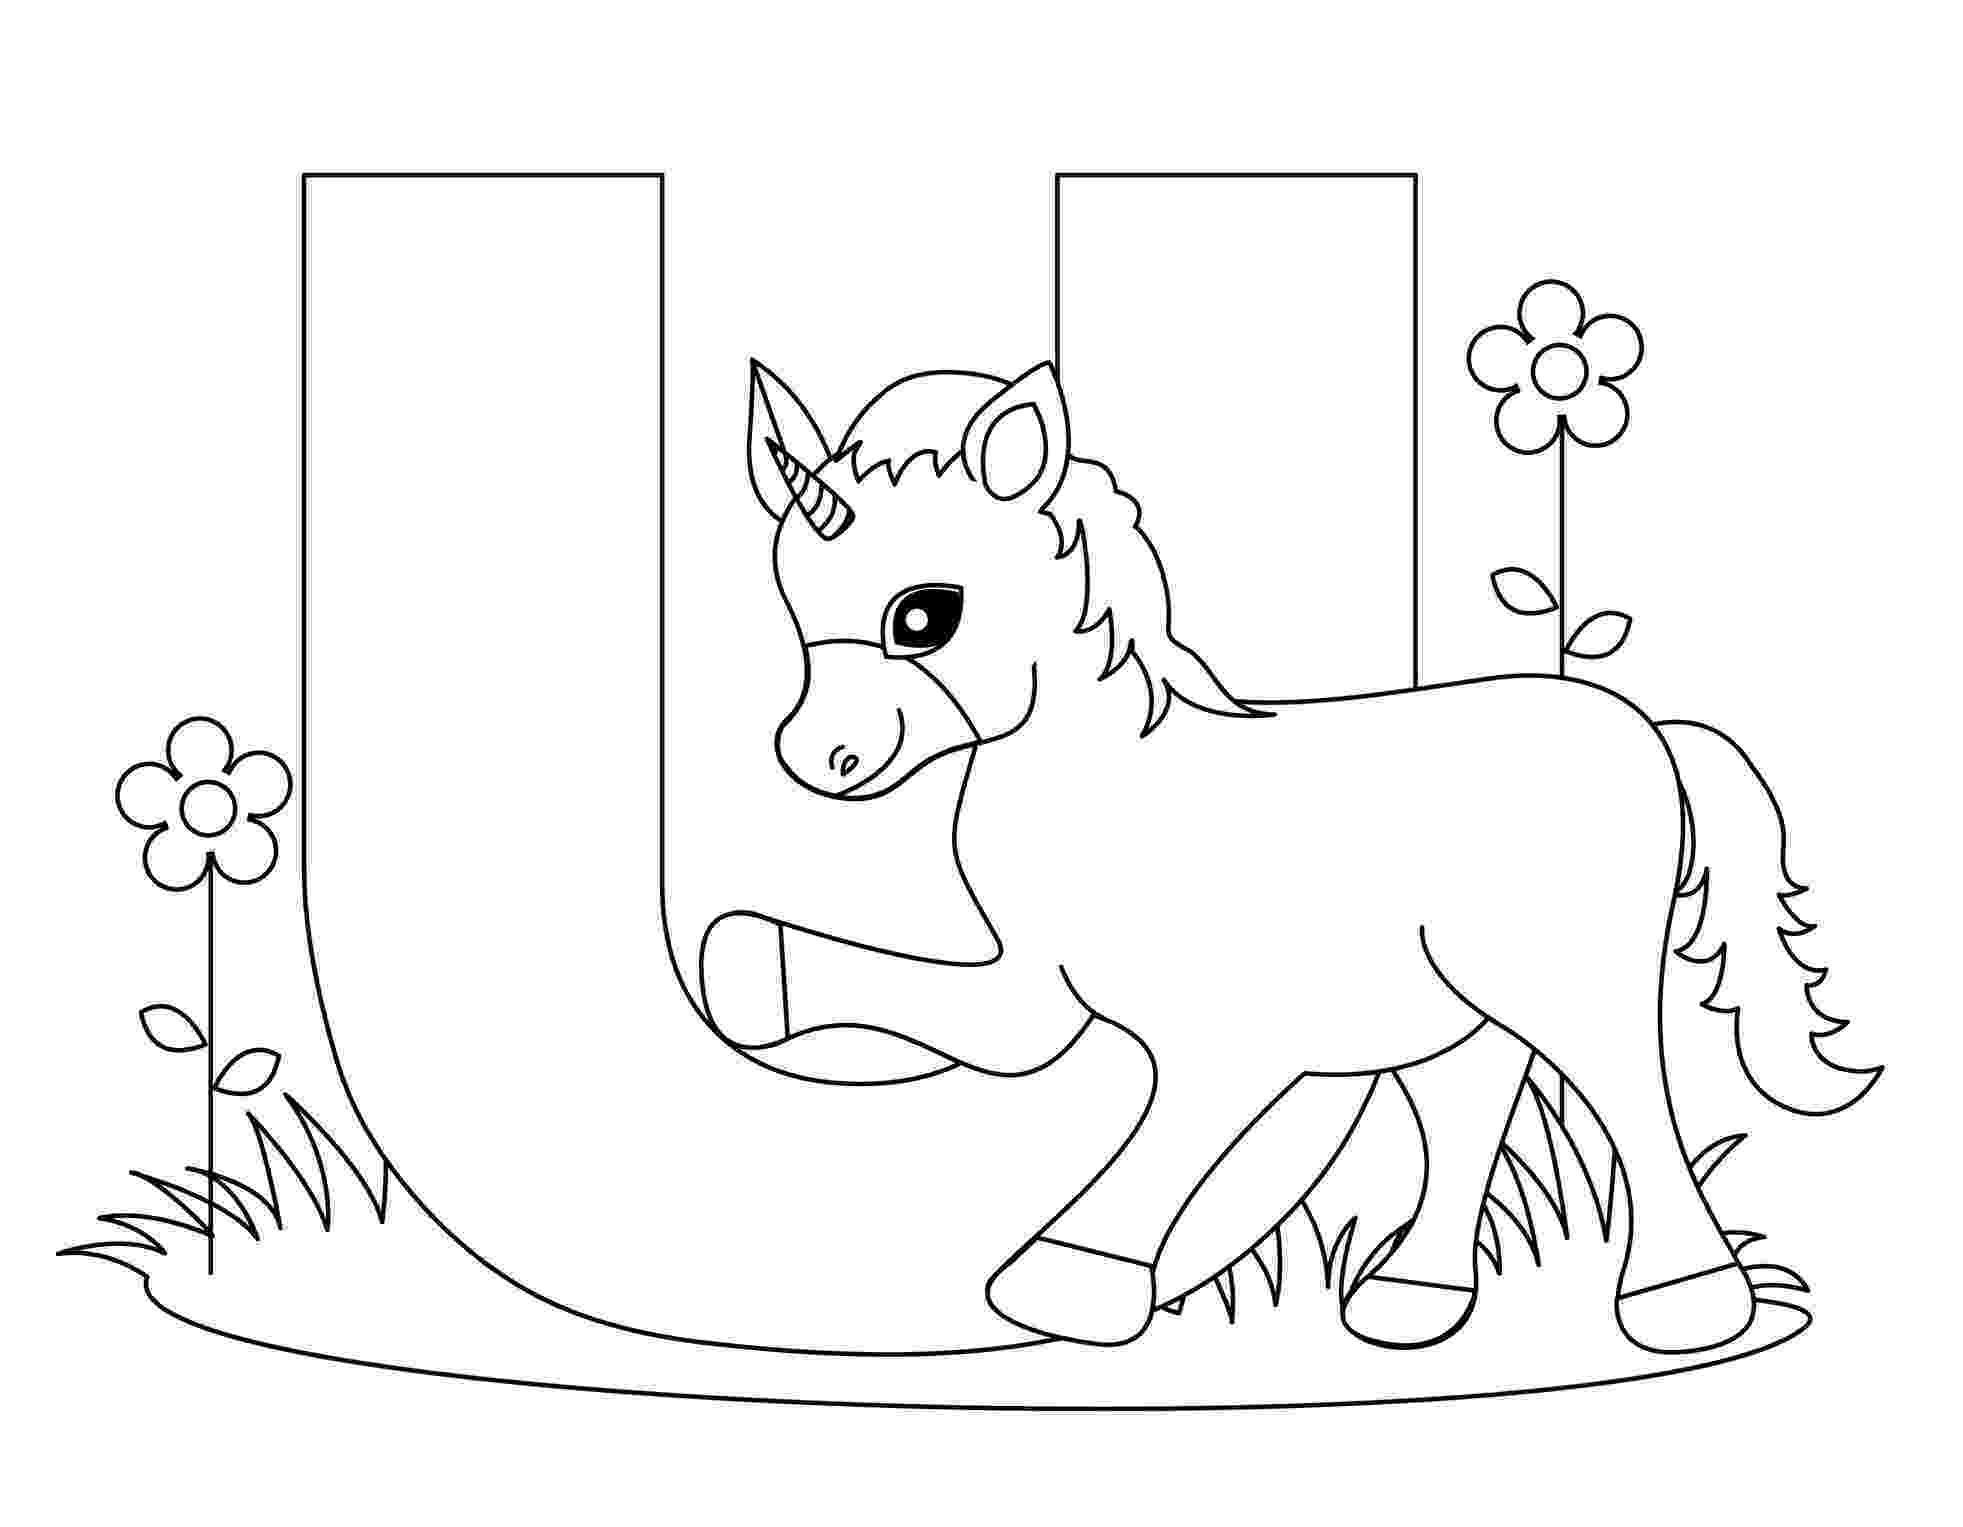 coloring pictures of alphabet letters free printable alphabet coloring pages for kids best of alphabet coloring pictures letters